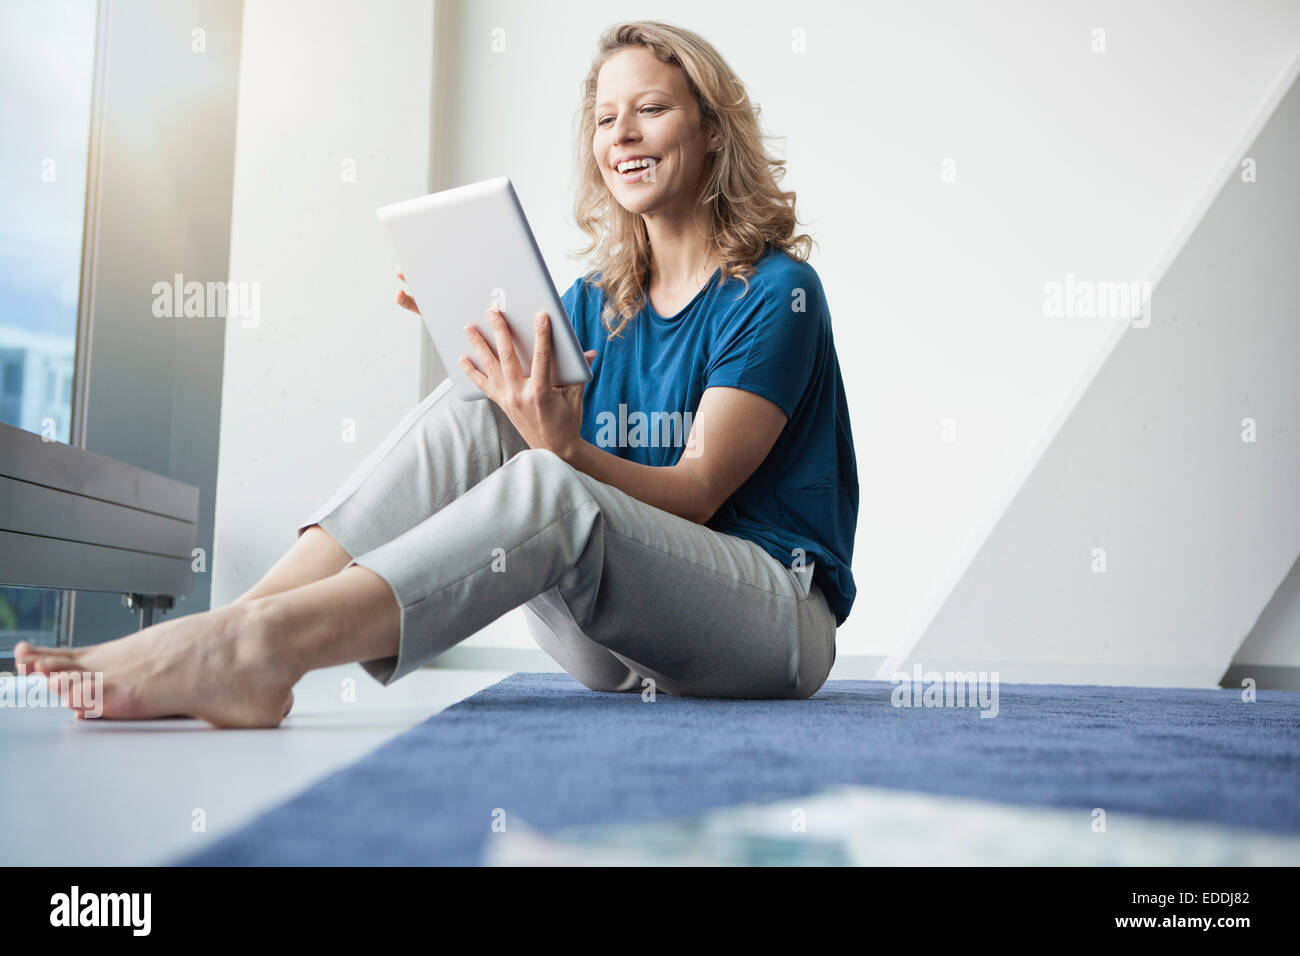 Portrait of smiling mature woman sitting with digital tablet on the floor in her apartment - Stock Image